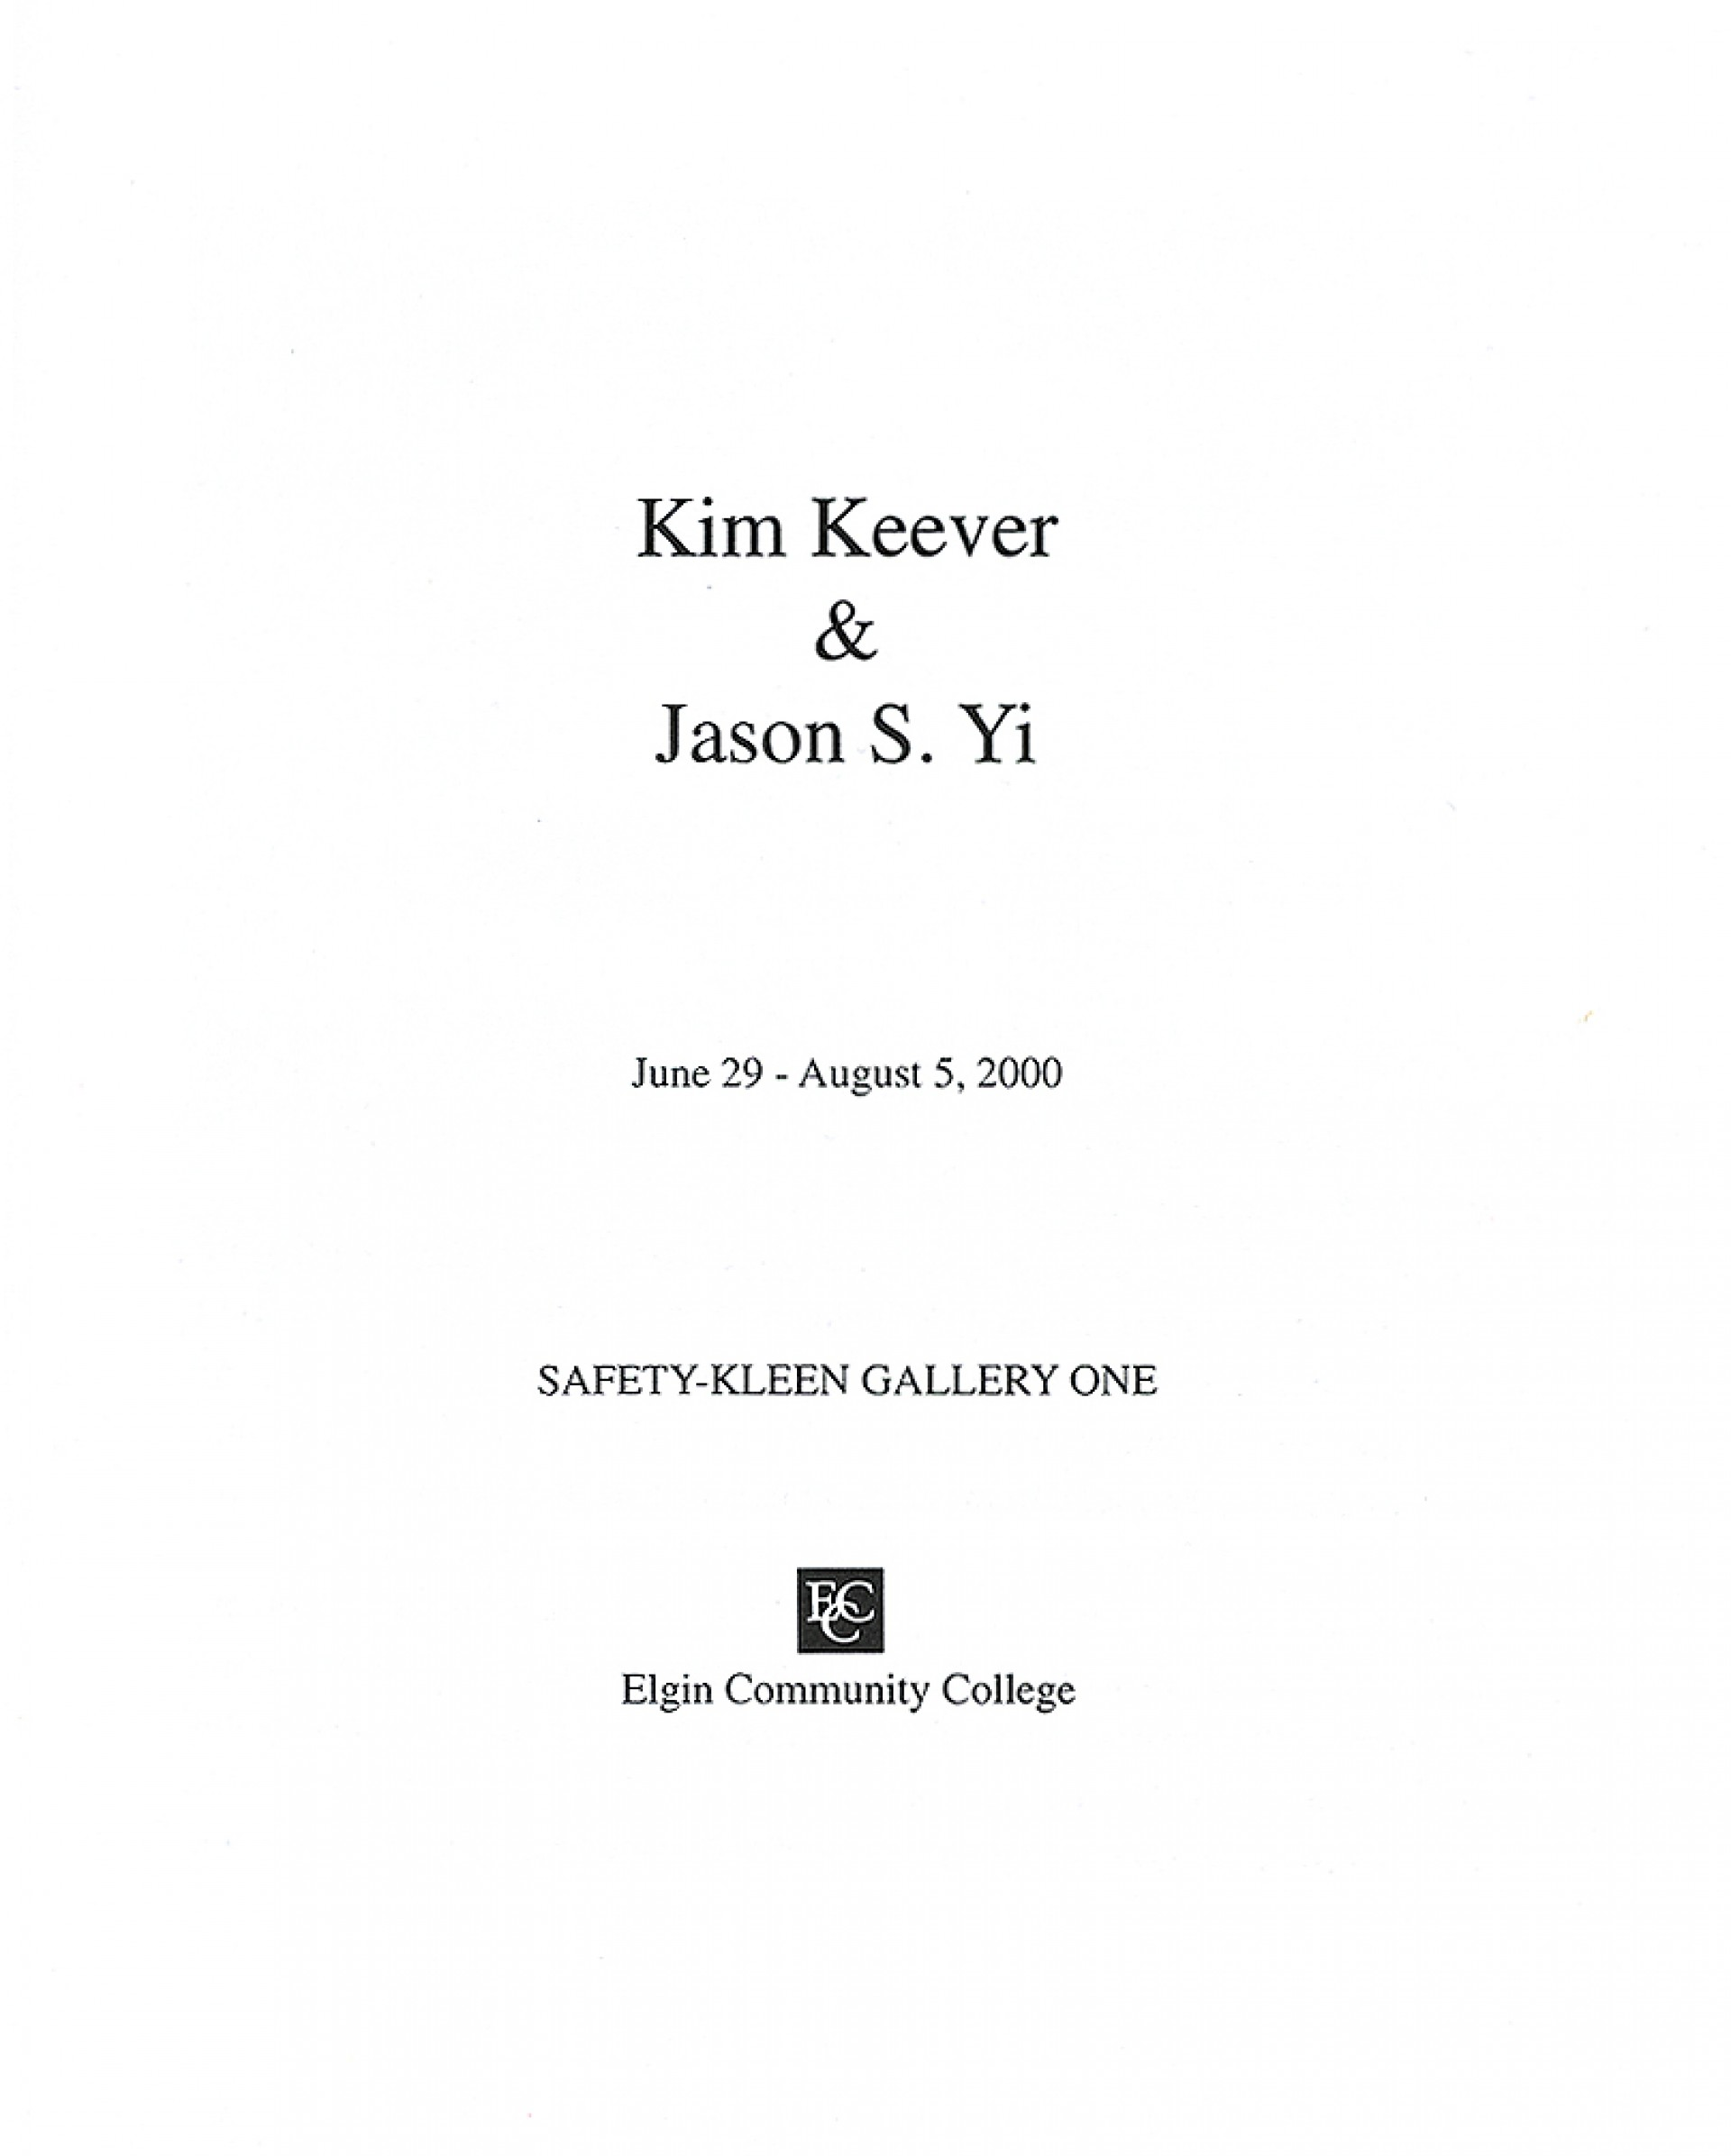 006 Jason Yi Catalog Title Page How To Do Cover For An Essay Best A Make On Microsoft Word Chicago Works Cited In Mla Format 1920